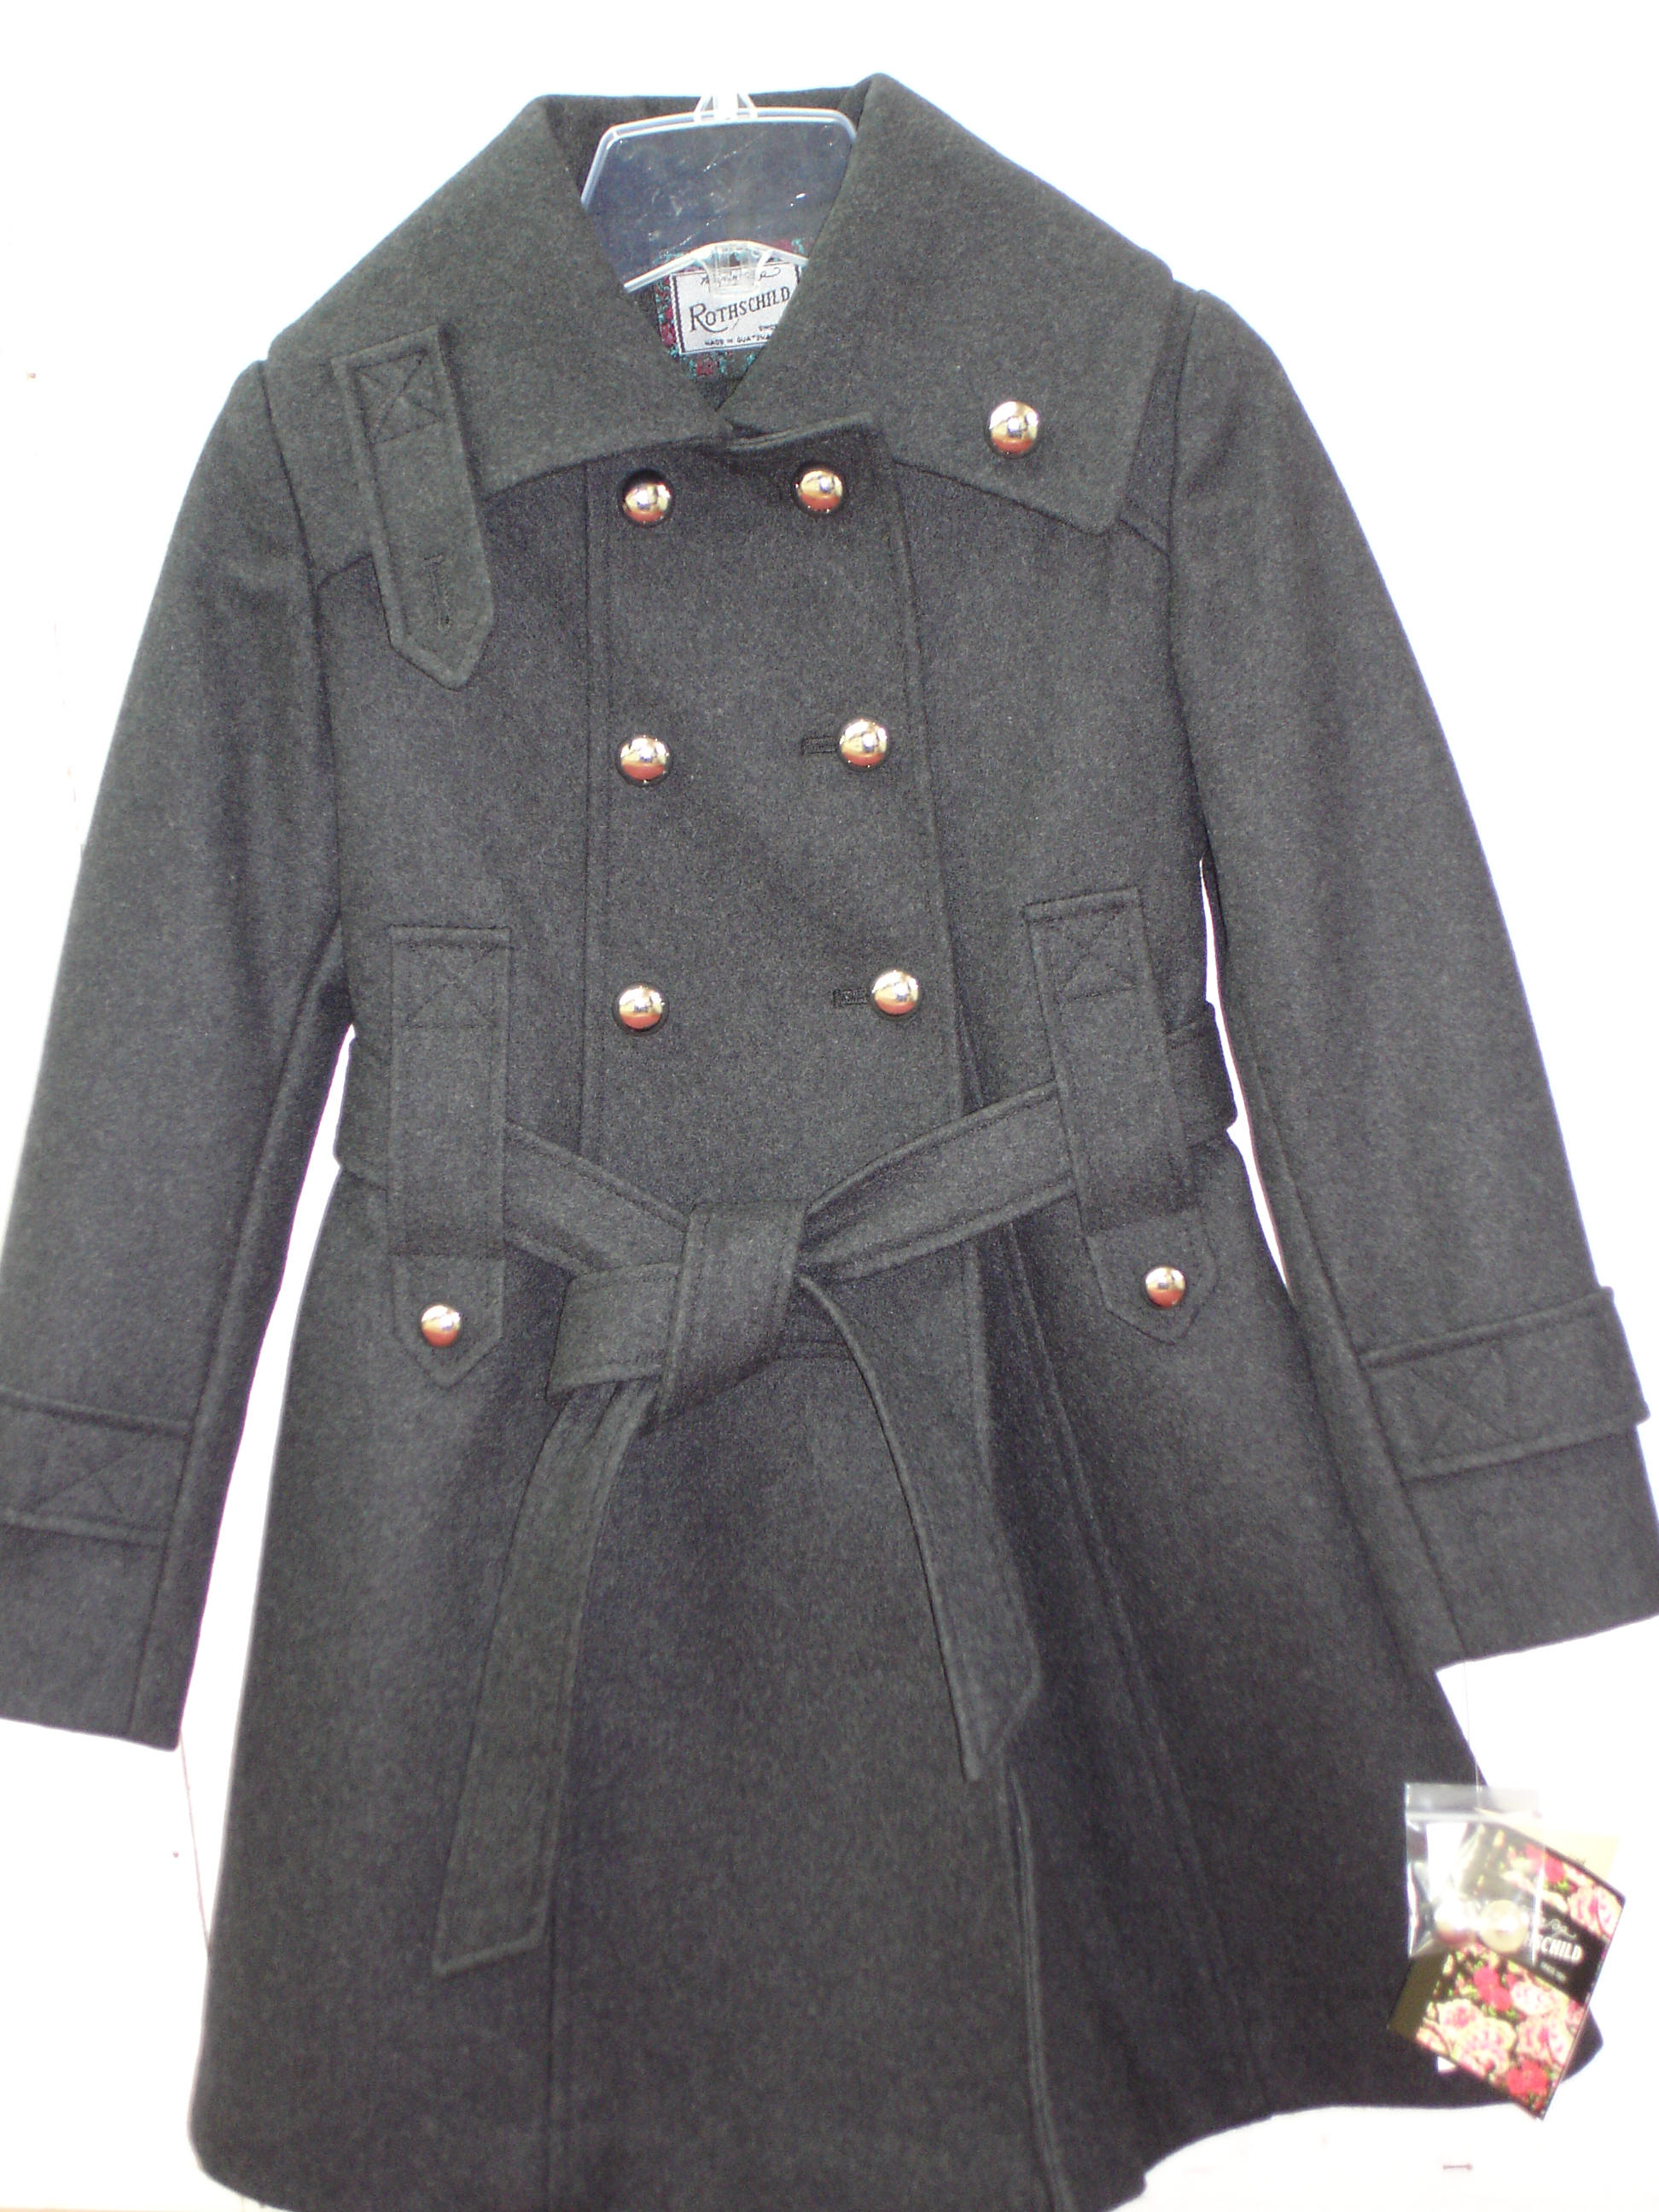 Row button coat has metallic colored buttons this rothschild coat